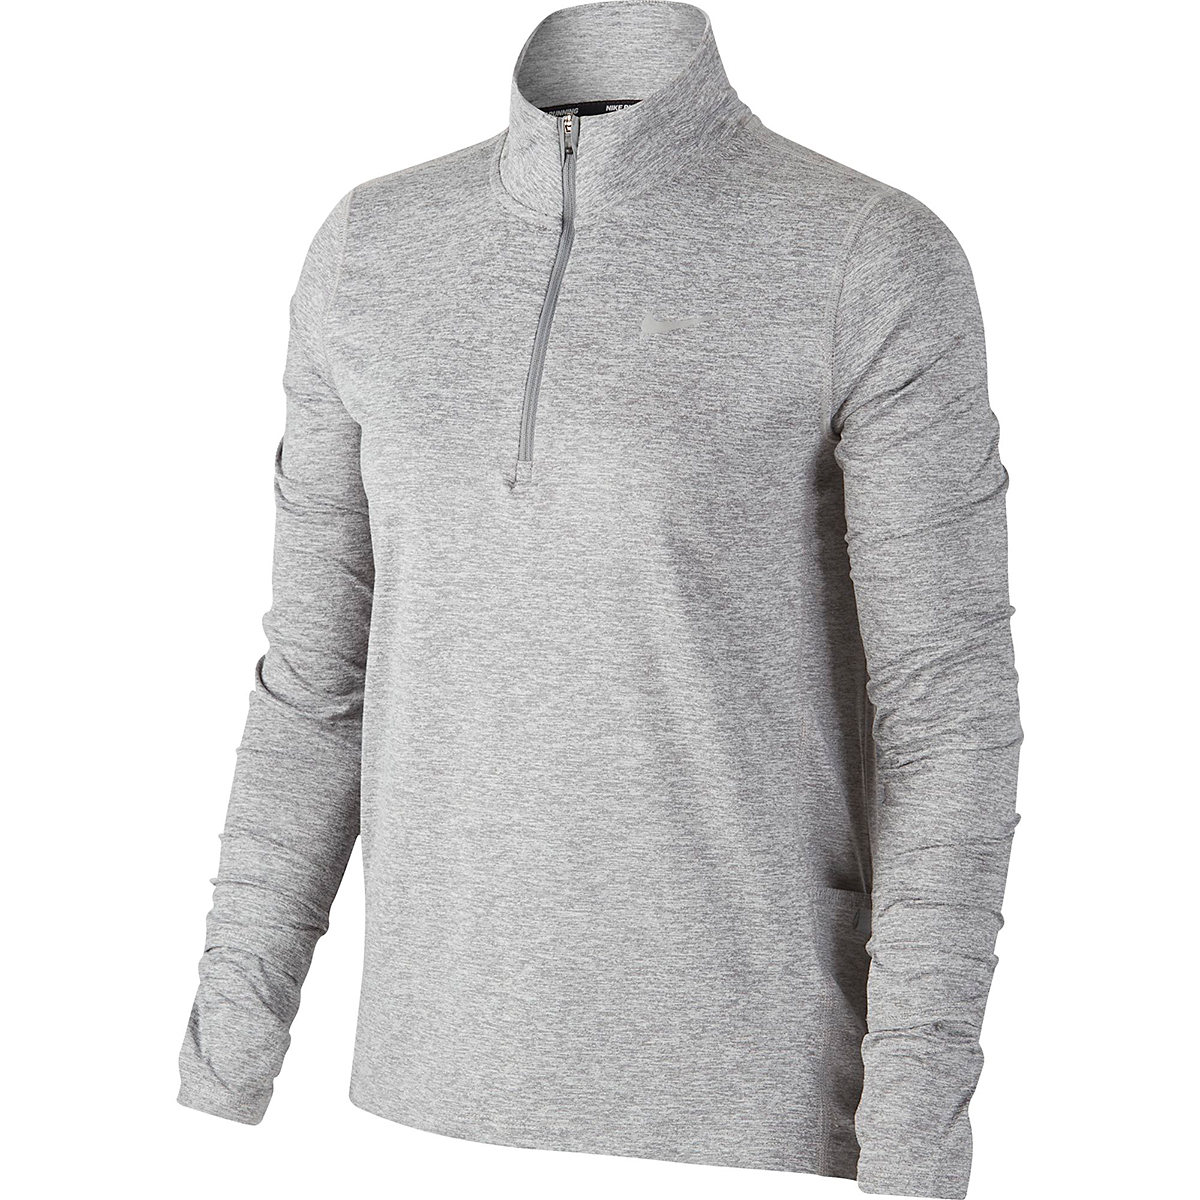 Women's Nike Womens Element 1/2-Zip Running Top - Color: Smoke Grey/Reflective Silver - Size: XS, Smoke Grey/Reflective Silver, large, image 1